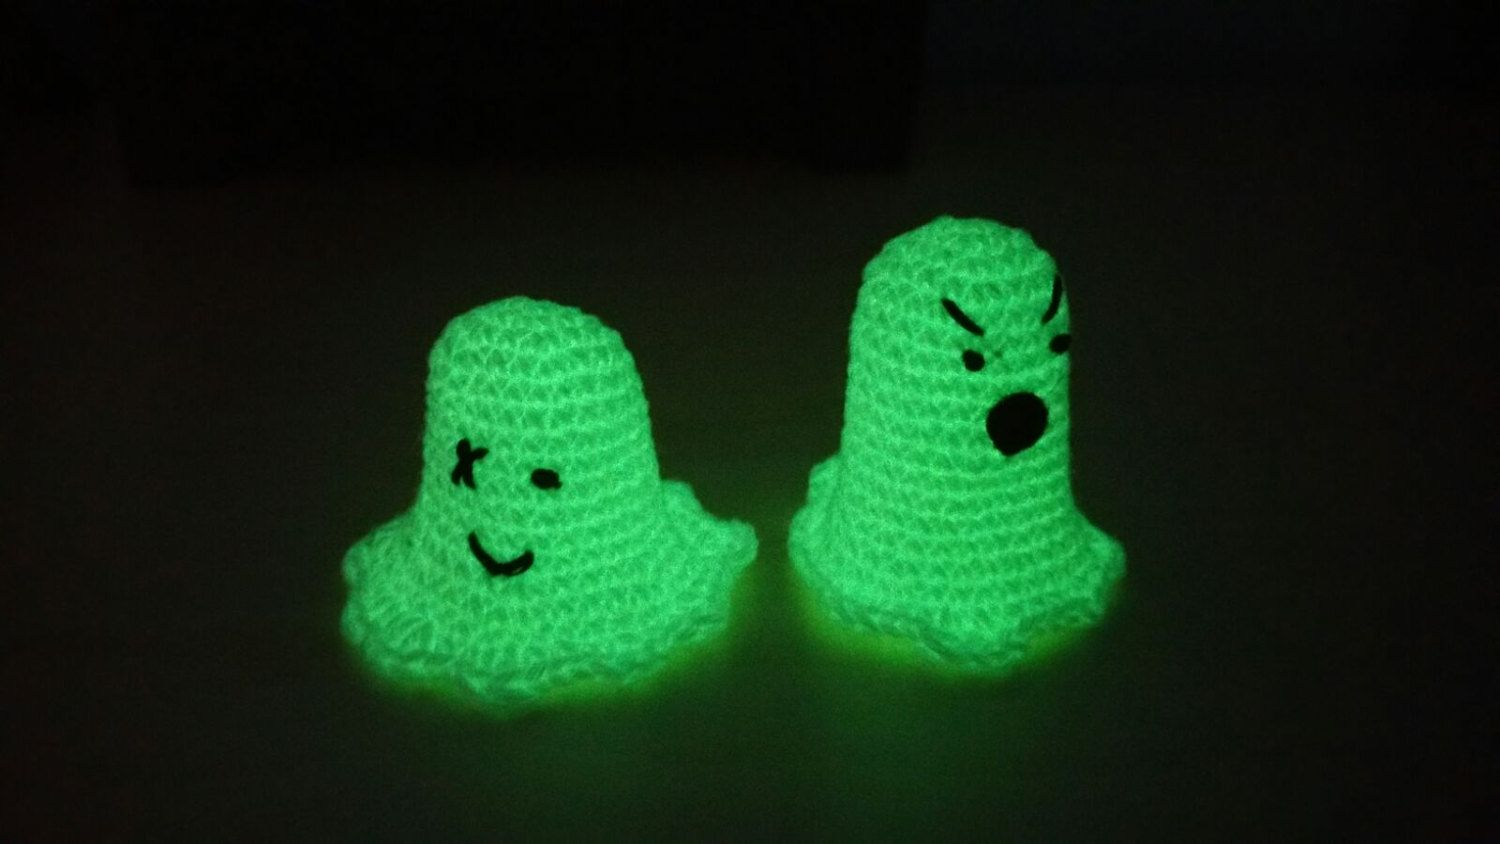 Local free shipping - Spike and Spooky mini glow in the dark finger - glow in the dark halloween decorations